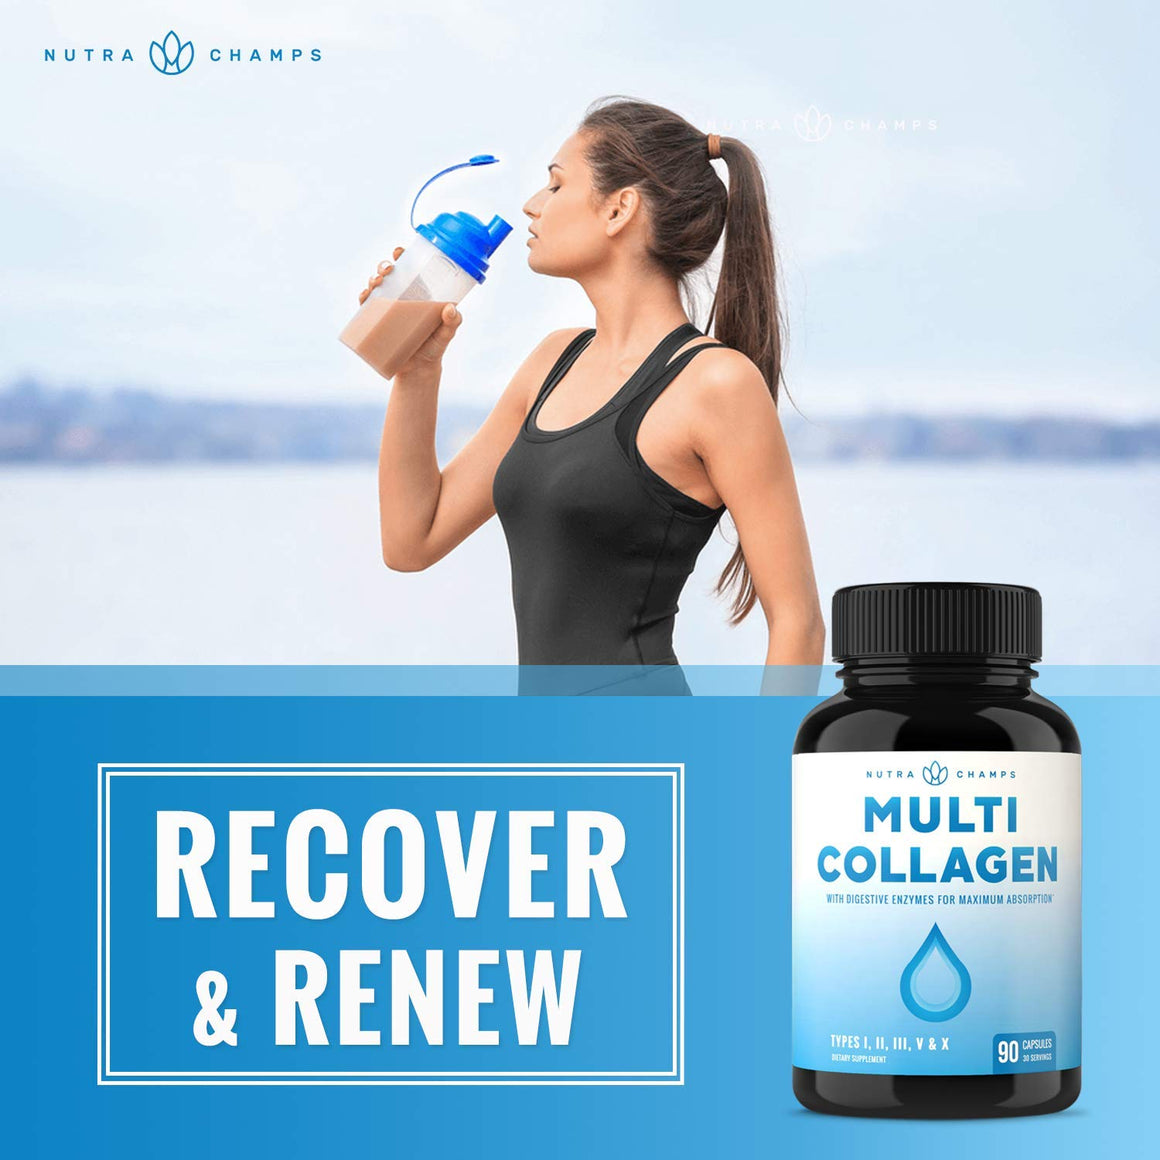 Multi Collagen